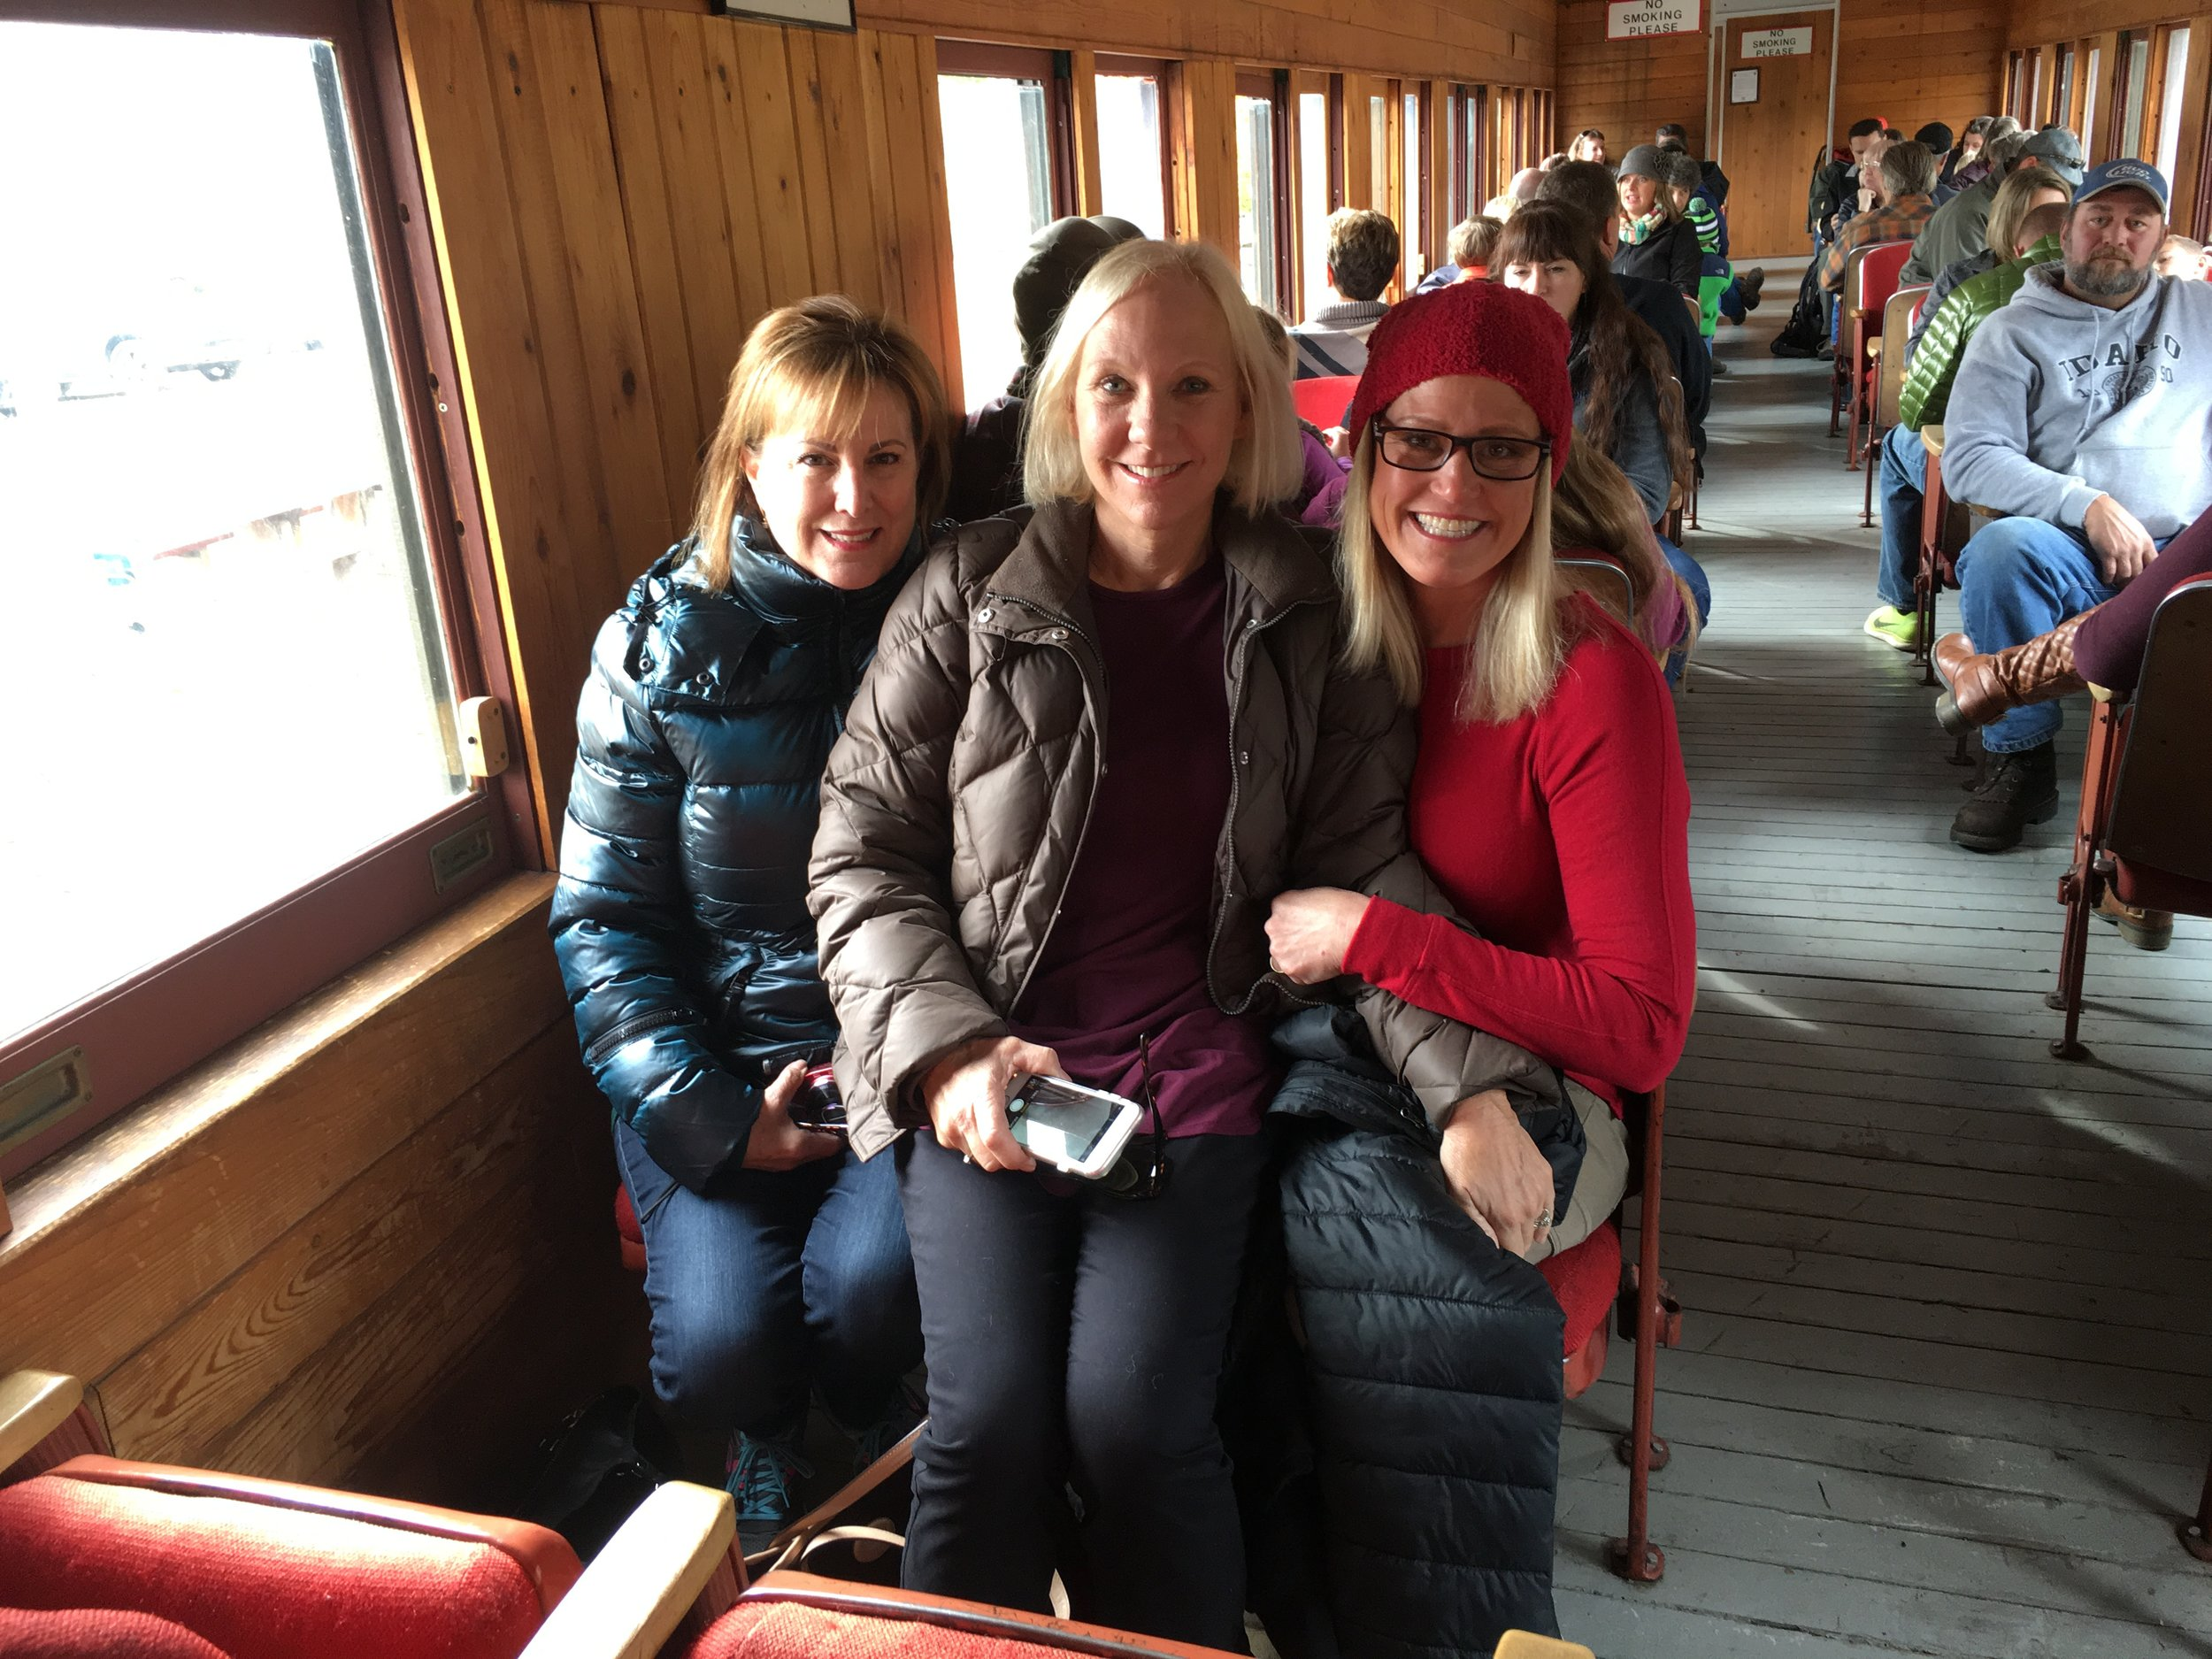 Debi, Jane, and me, riding the rails.